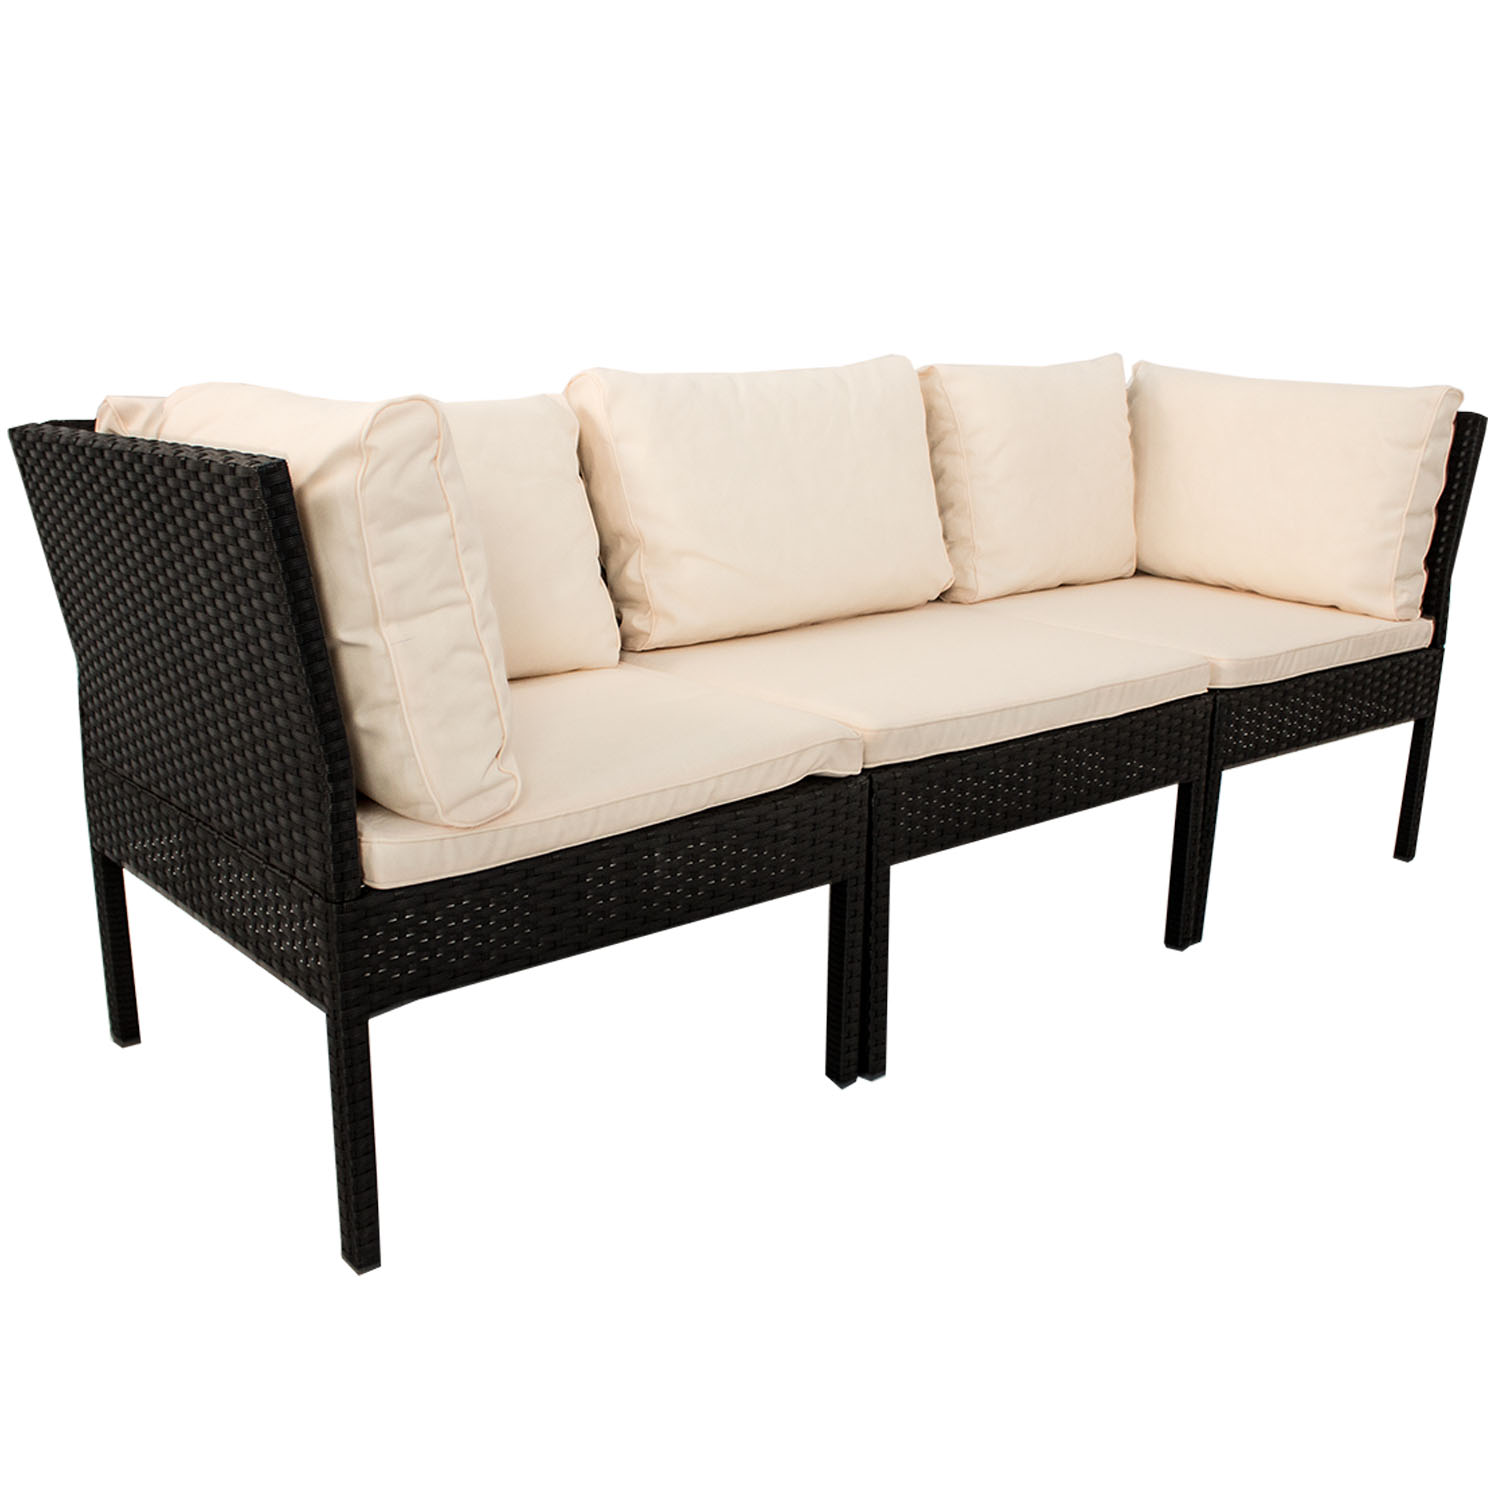 polyrattan gartenm bel ecksofa lounge rattan sitzgruppe. Black Bedroom Furniture Sets. Home Design Ideas